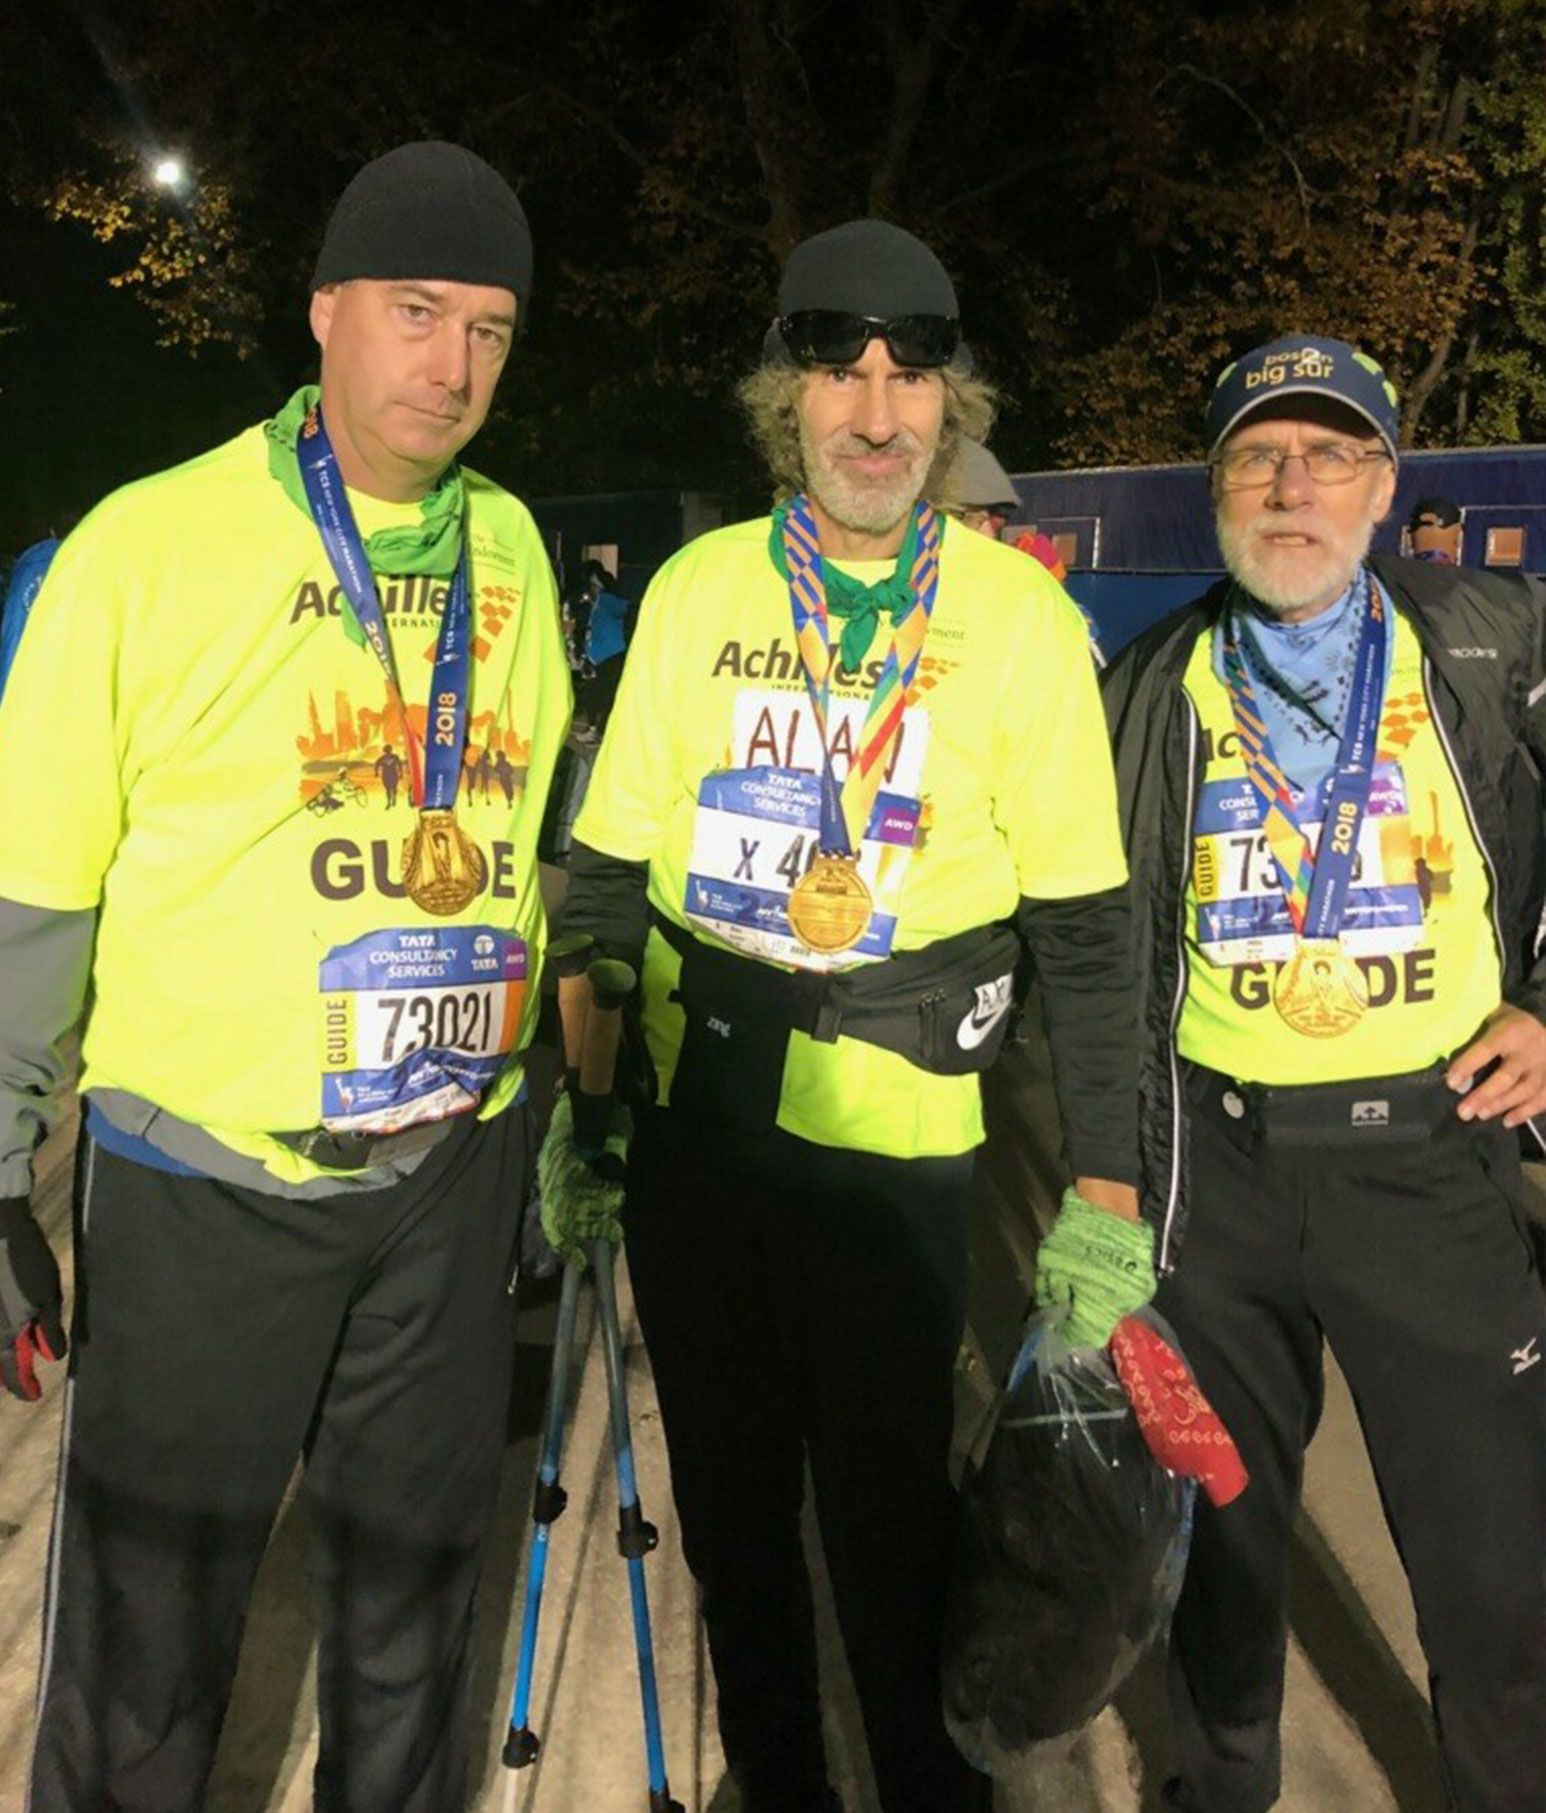 A trio of men are posing for a camera. The each are wearing marathon clothing with gold medals around their necks.